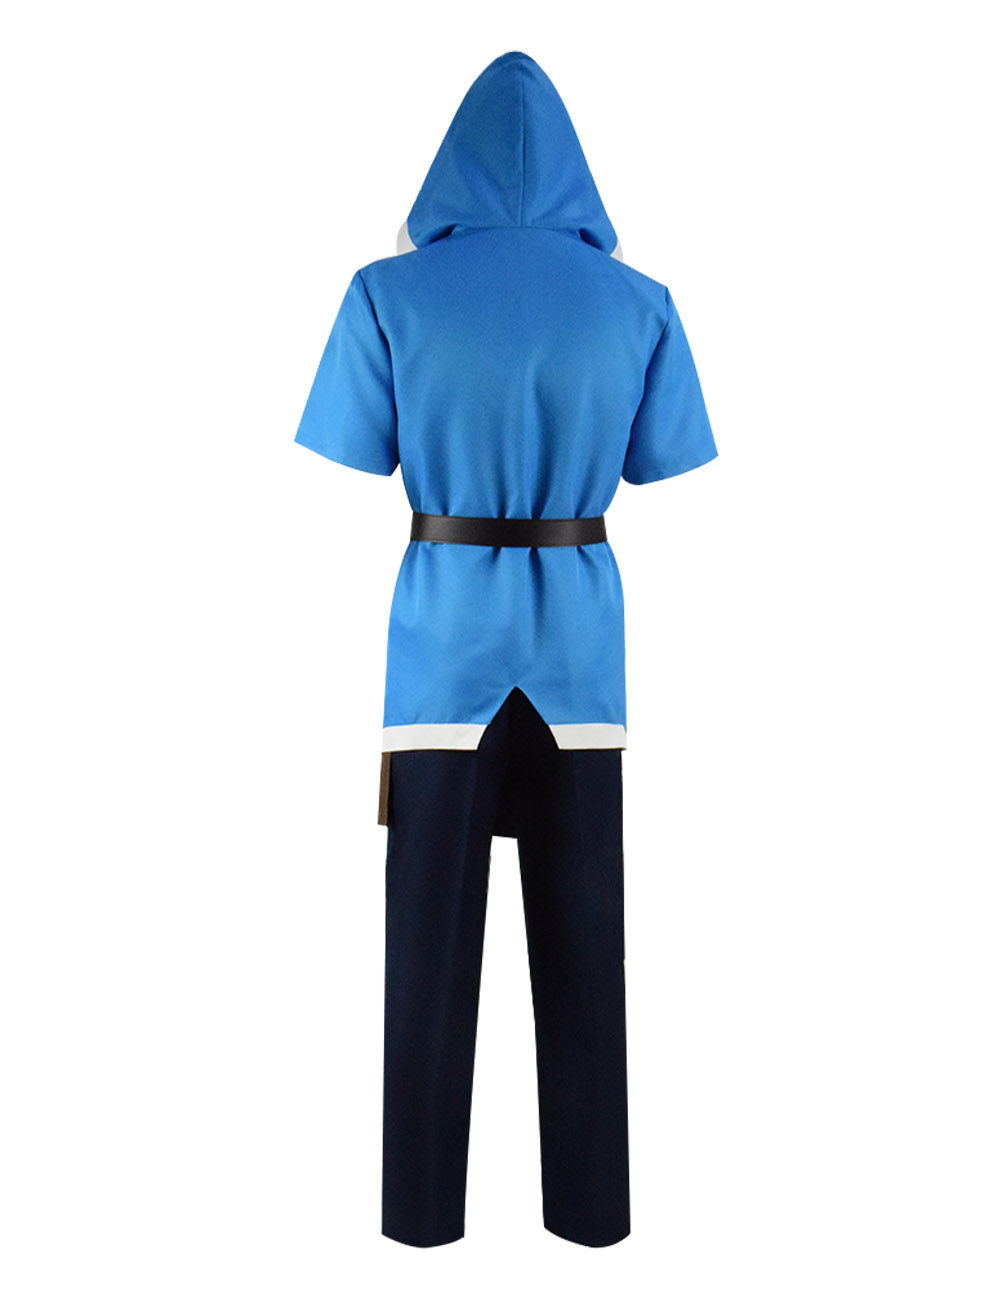 Affrontement Clans assistant Cosplay Costume ensemble complet tenue Halloween mascarade Cosplay Costume - 2